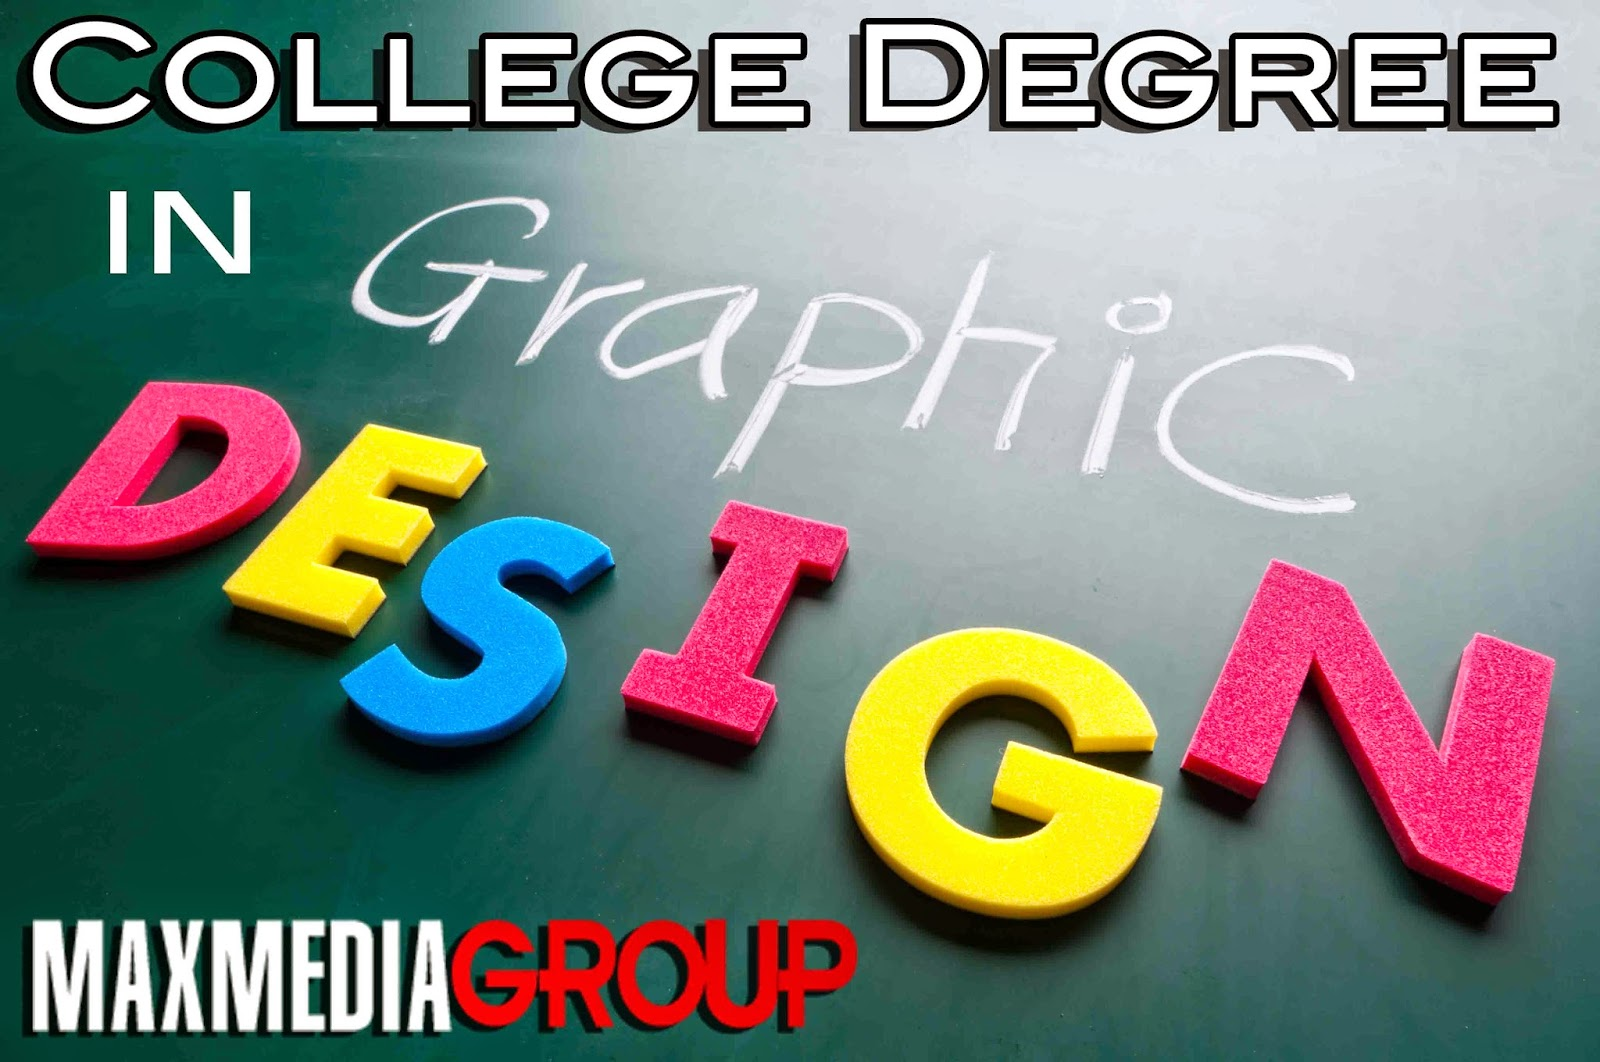 Becoming a Graphic Designer without a College Degree